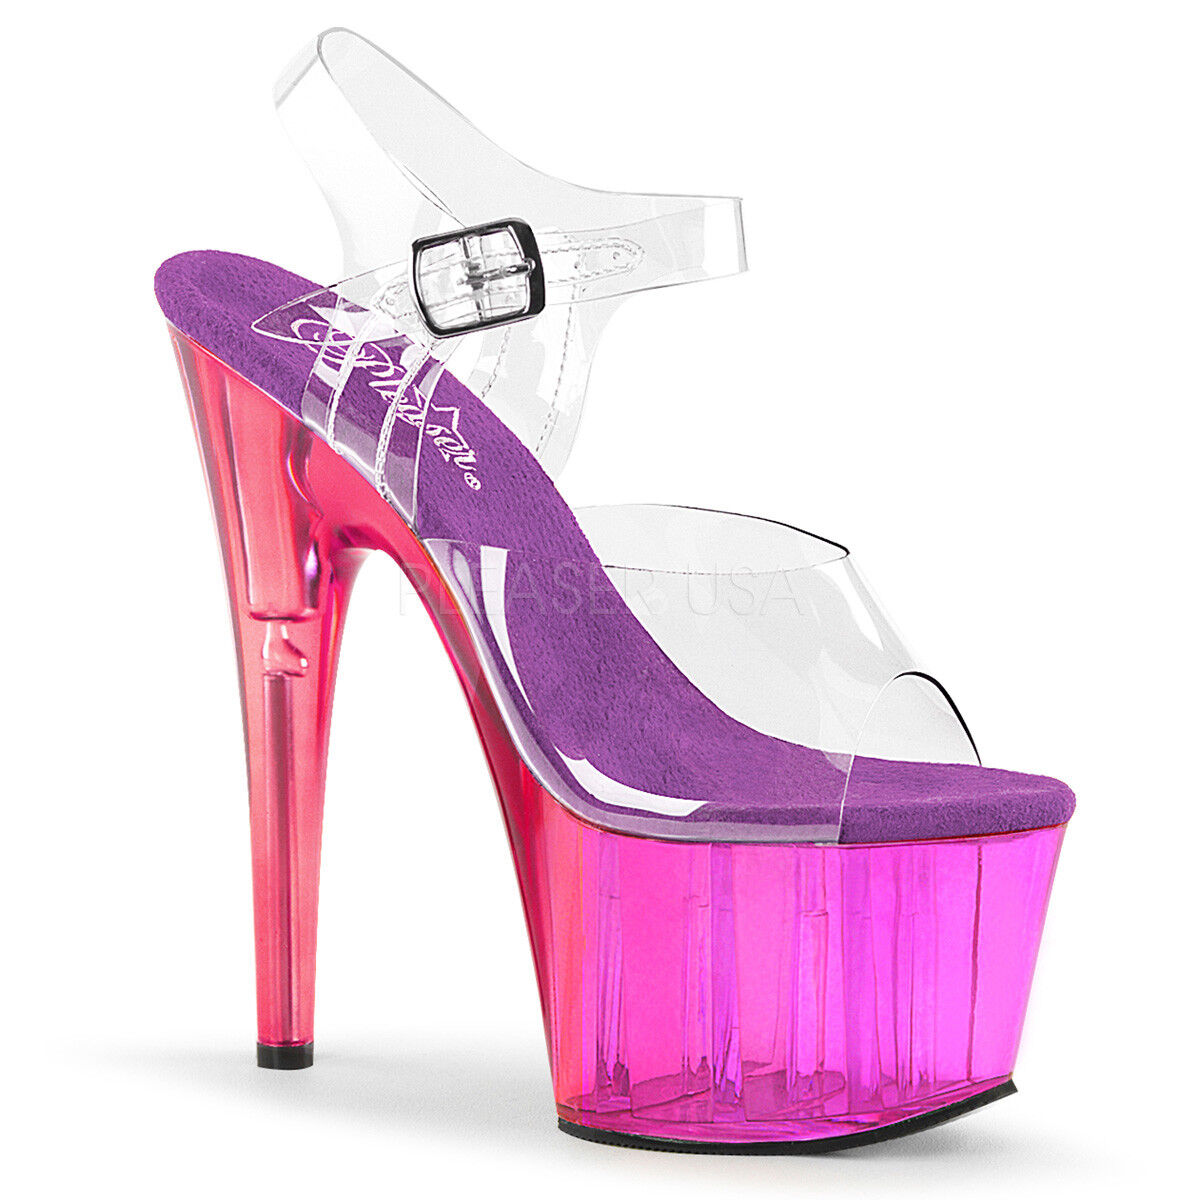 PLEASER ADORE 708MCT PURPLE TINTED PLATFORM POLE DANCING STILETTO SANDALS